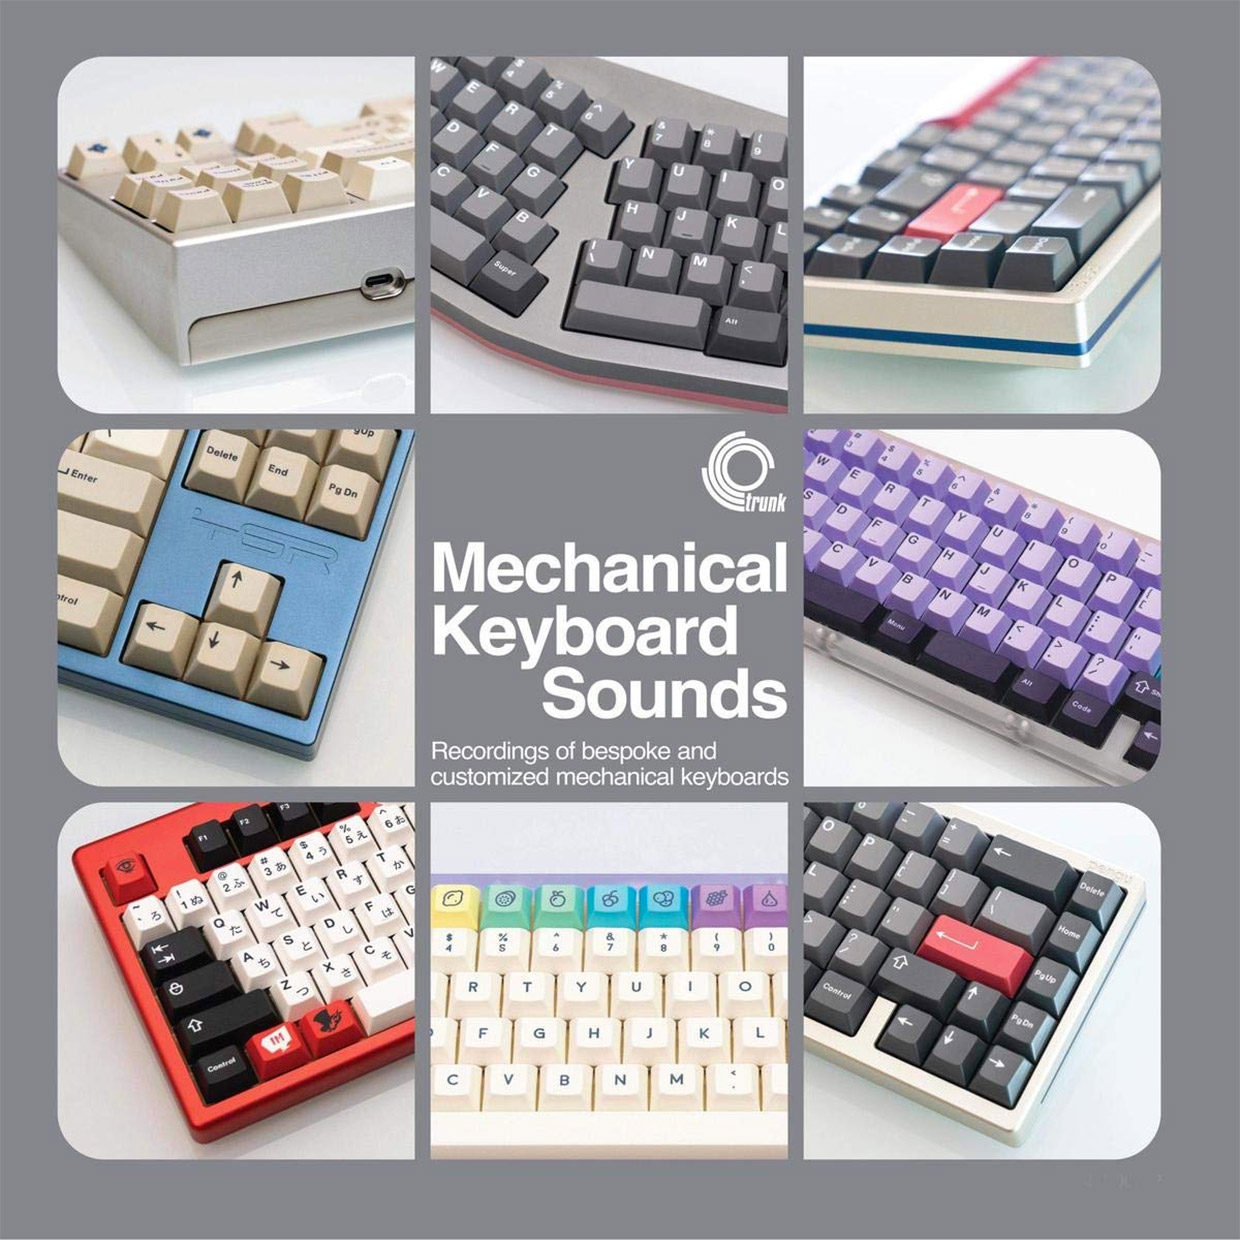 Mechanical Keyboard Sounds